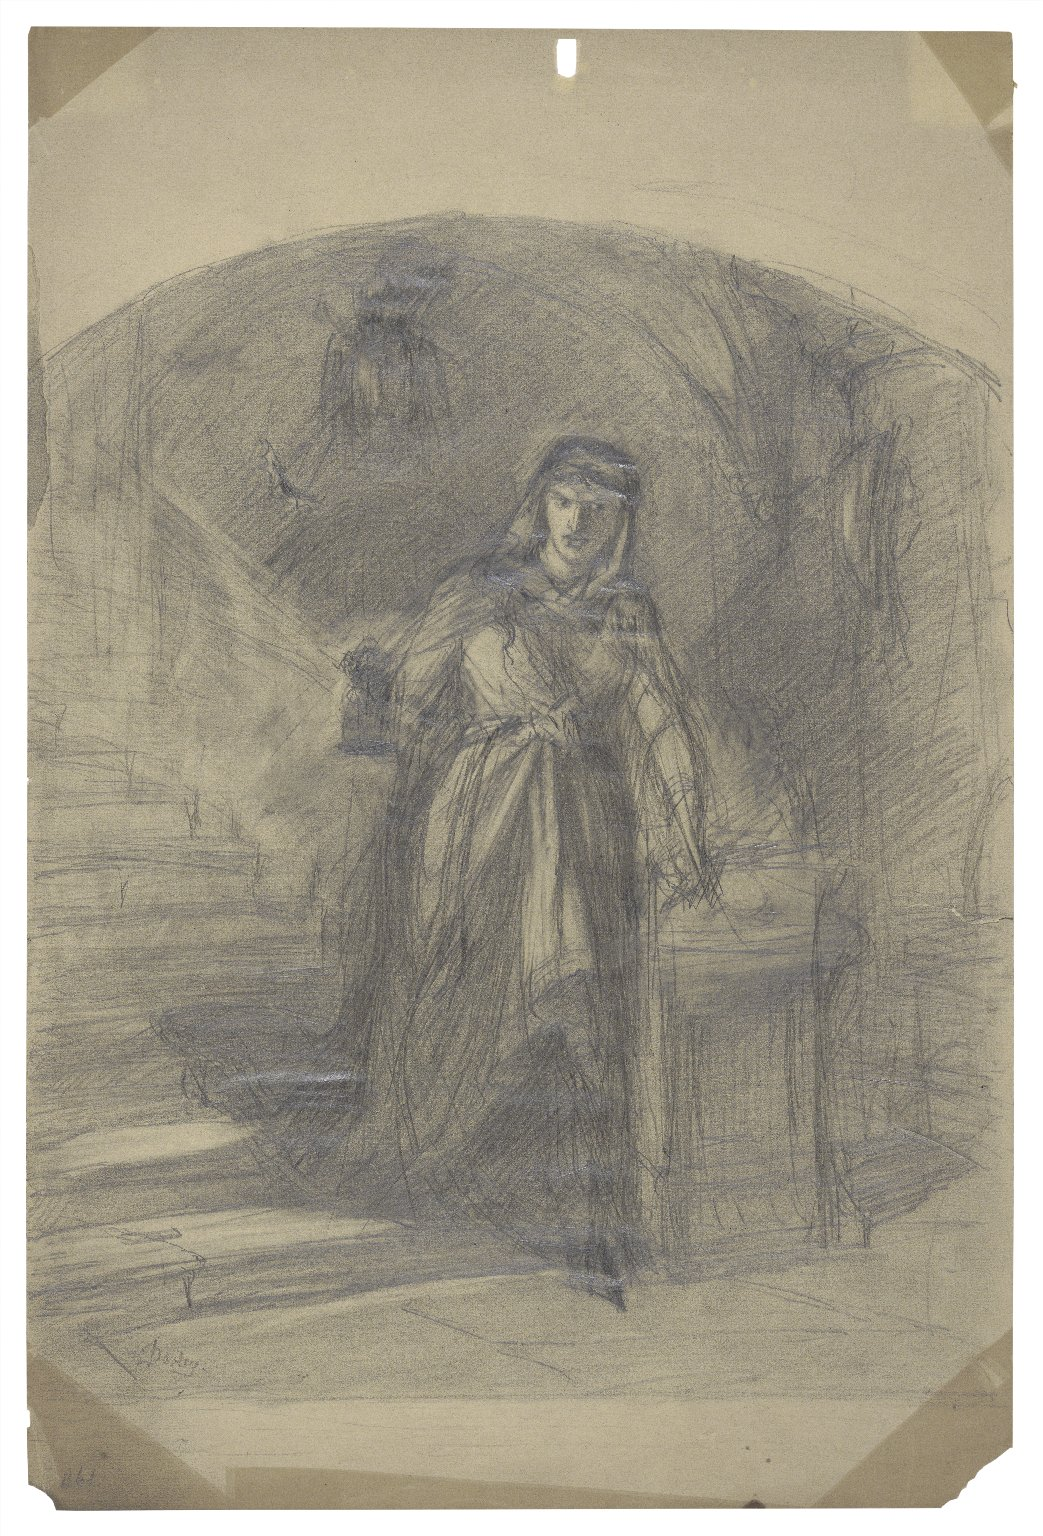 Lady Macbeth -- study for design not completed [graphic] / Darley.